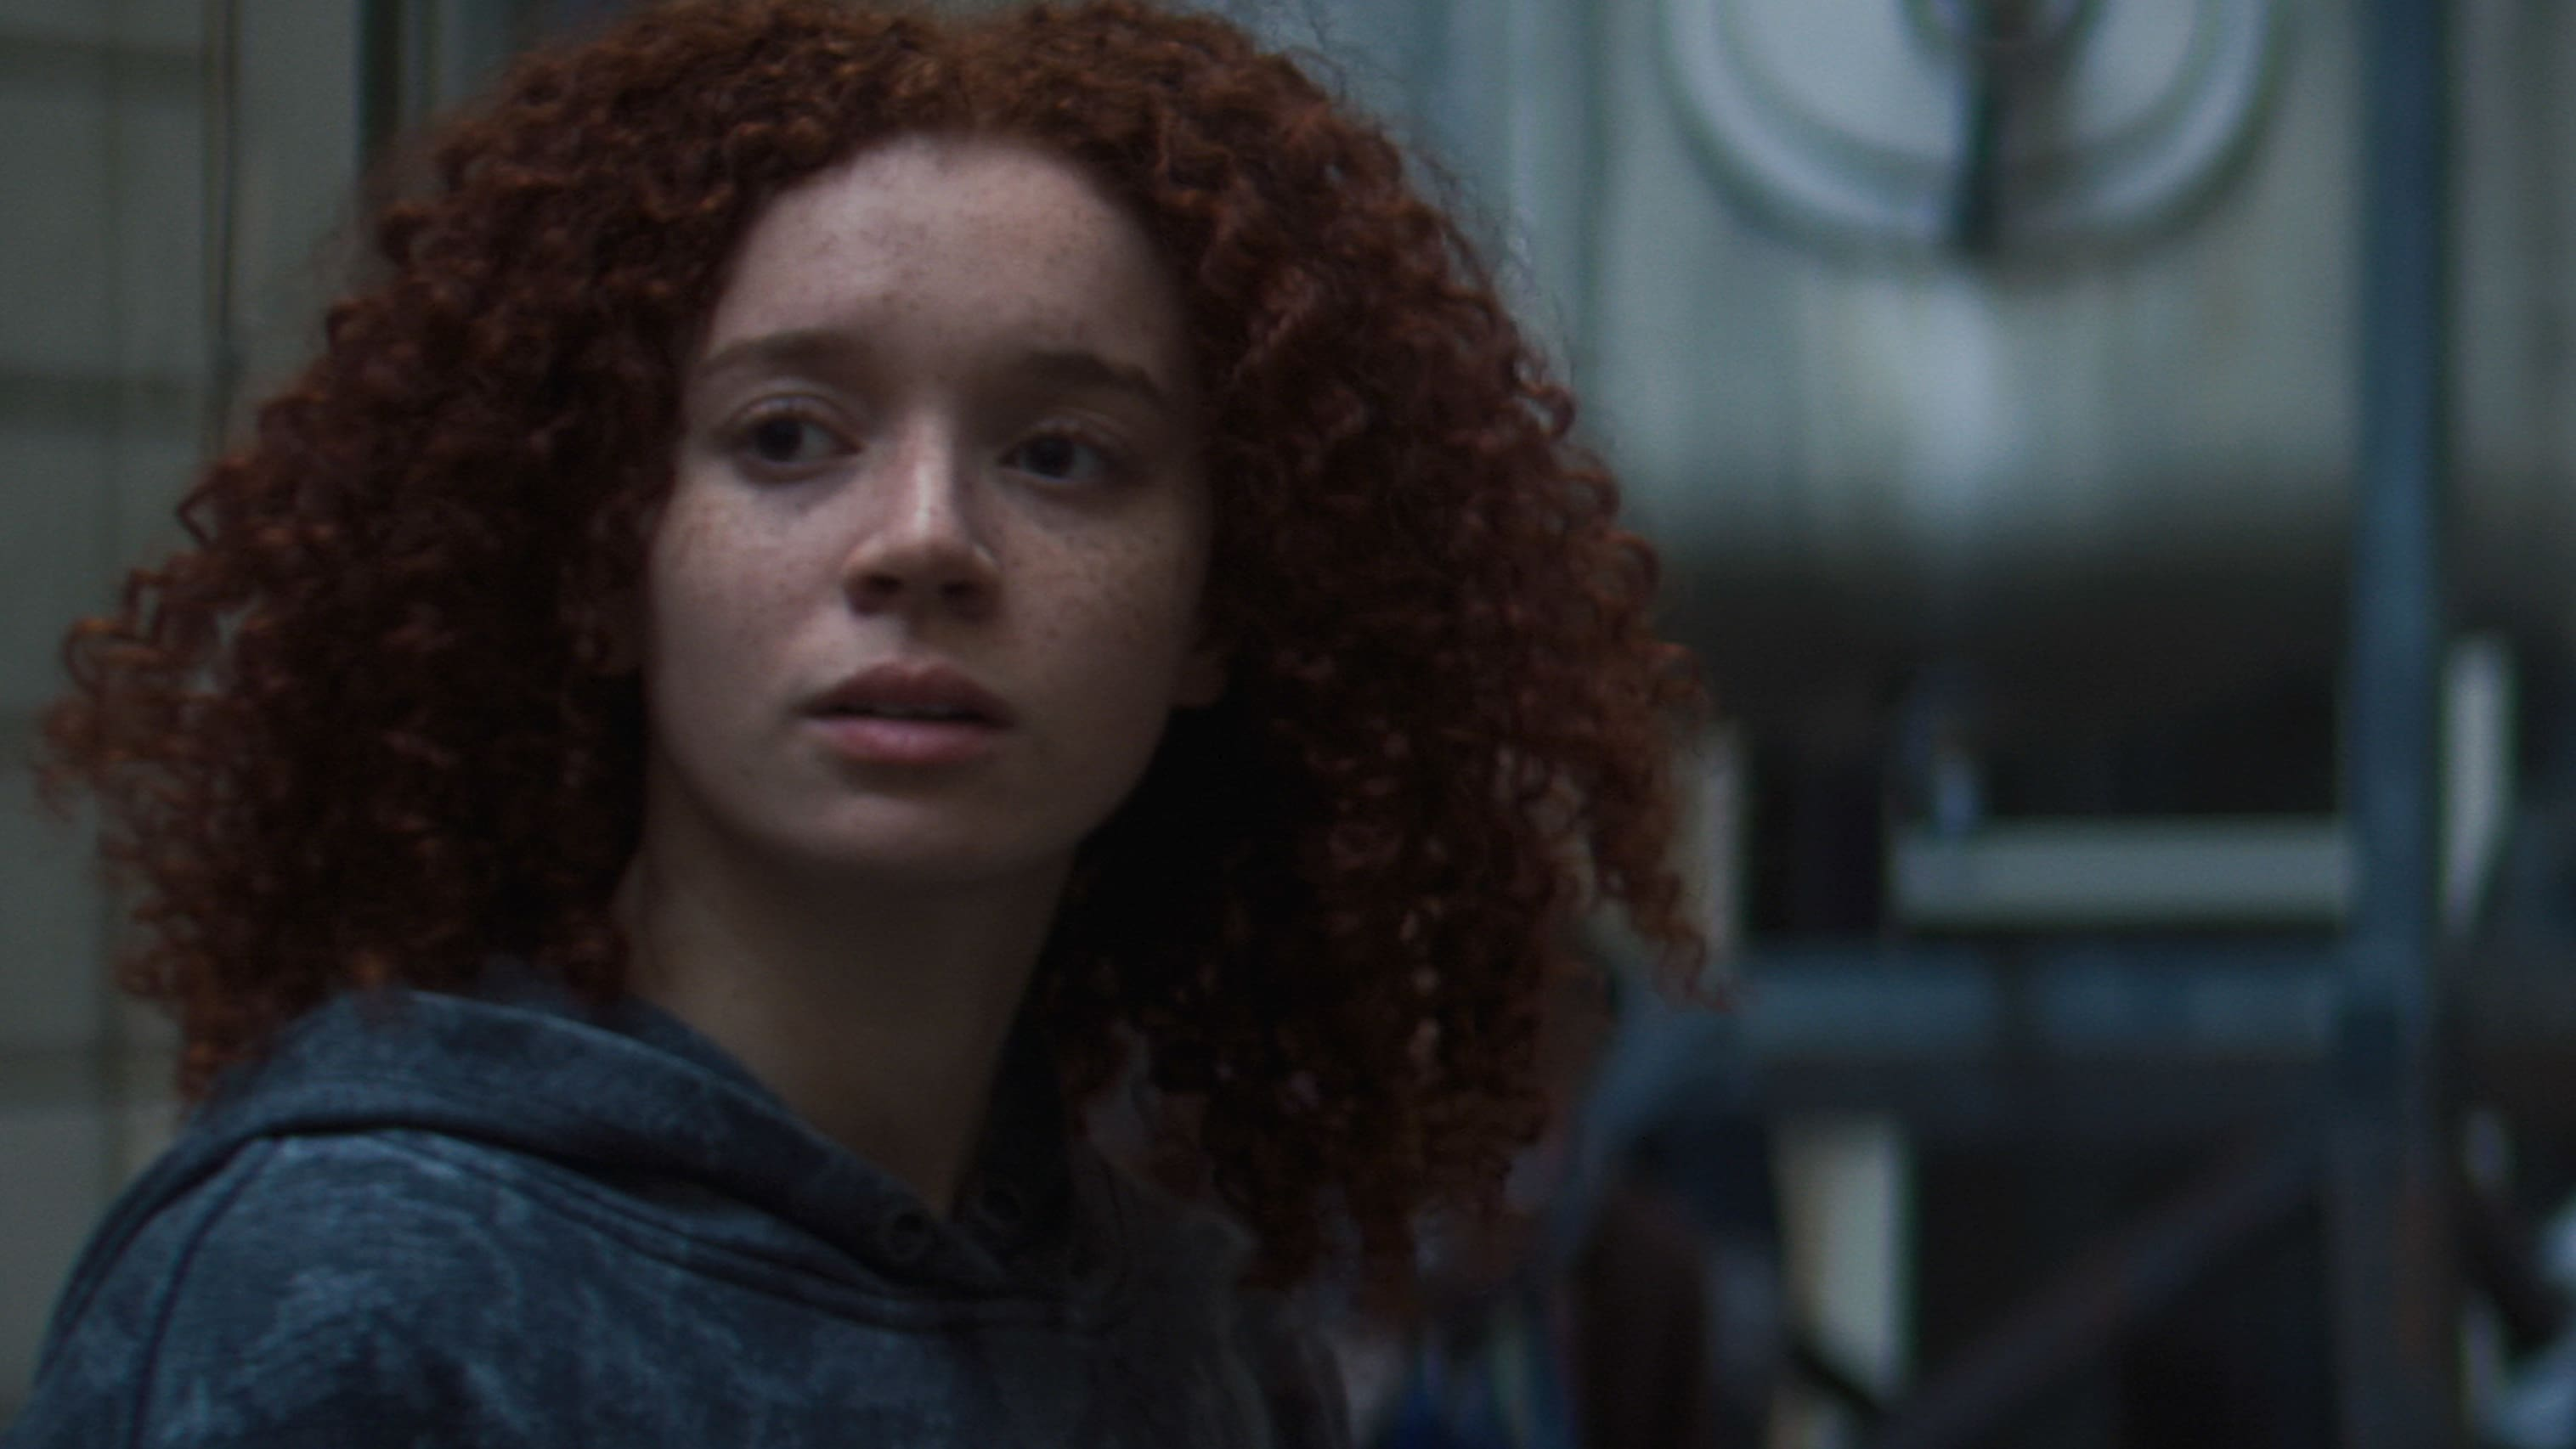 Karli Morgenthau (Erin Kellyman) in Marvel Studios' THE FALCON AND THE WINTER SOLDIER exclusively on Disney+. Photo courtesy of Marvel Studios. ©Marvel Studios 2021. All Rights Reserved.